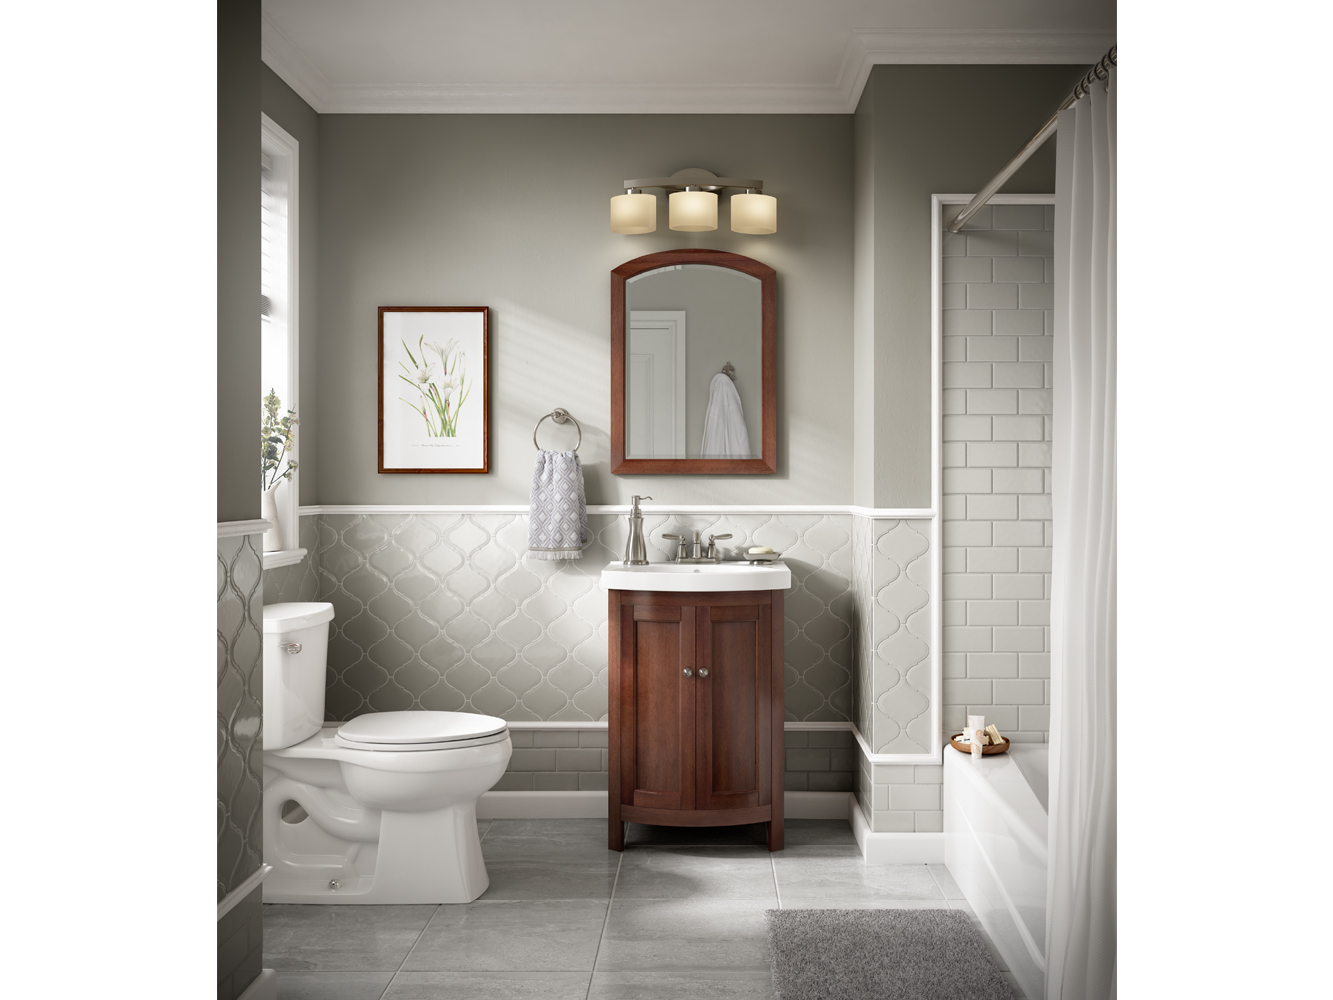 pix-us-cg-gray-bathroom